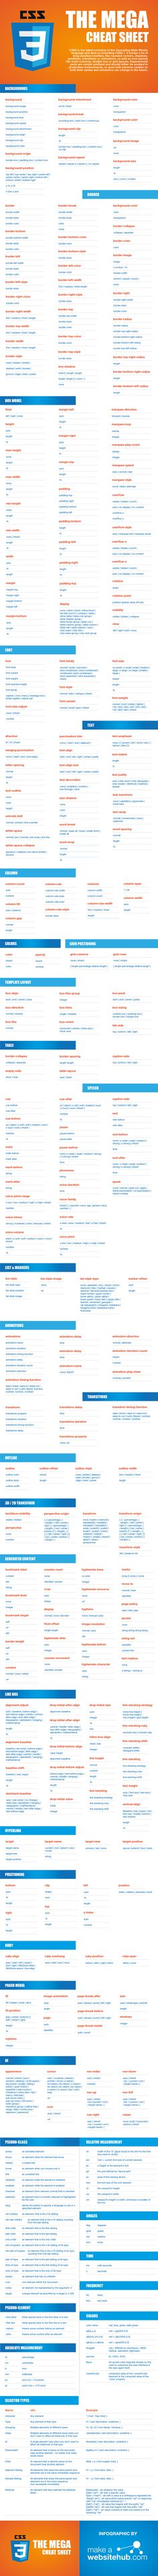 CSS3 Mega Cheat Sheet 2015